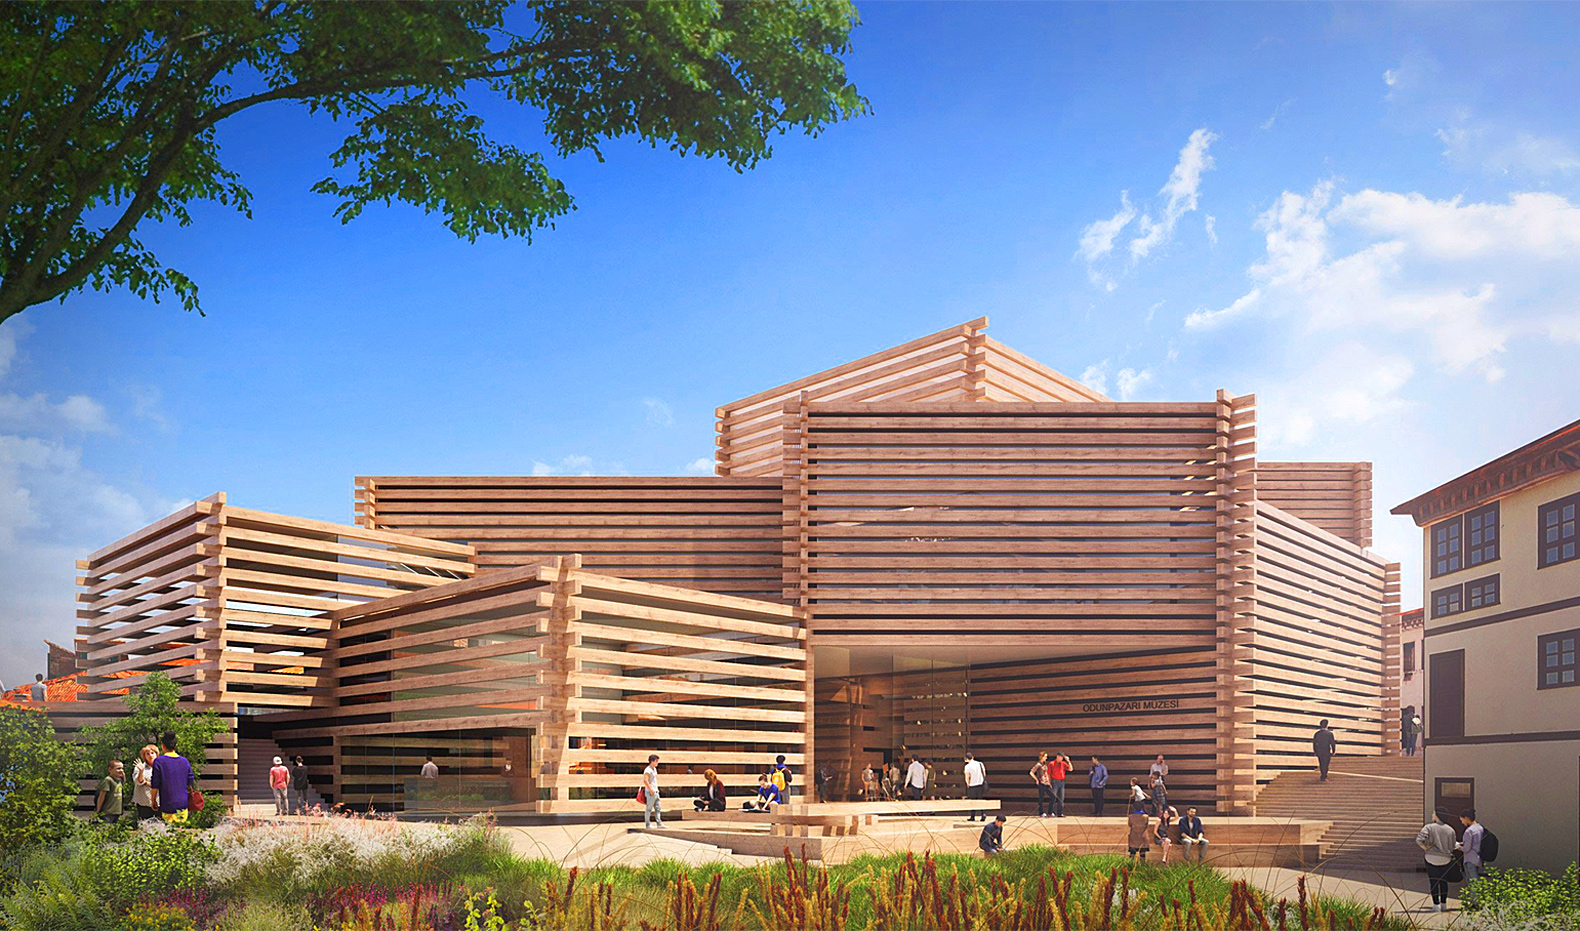 Kengo Kuma's Turkish art museum is made of stacked timber boxes